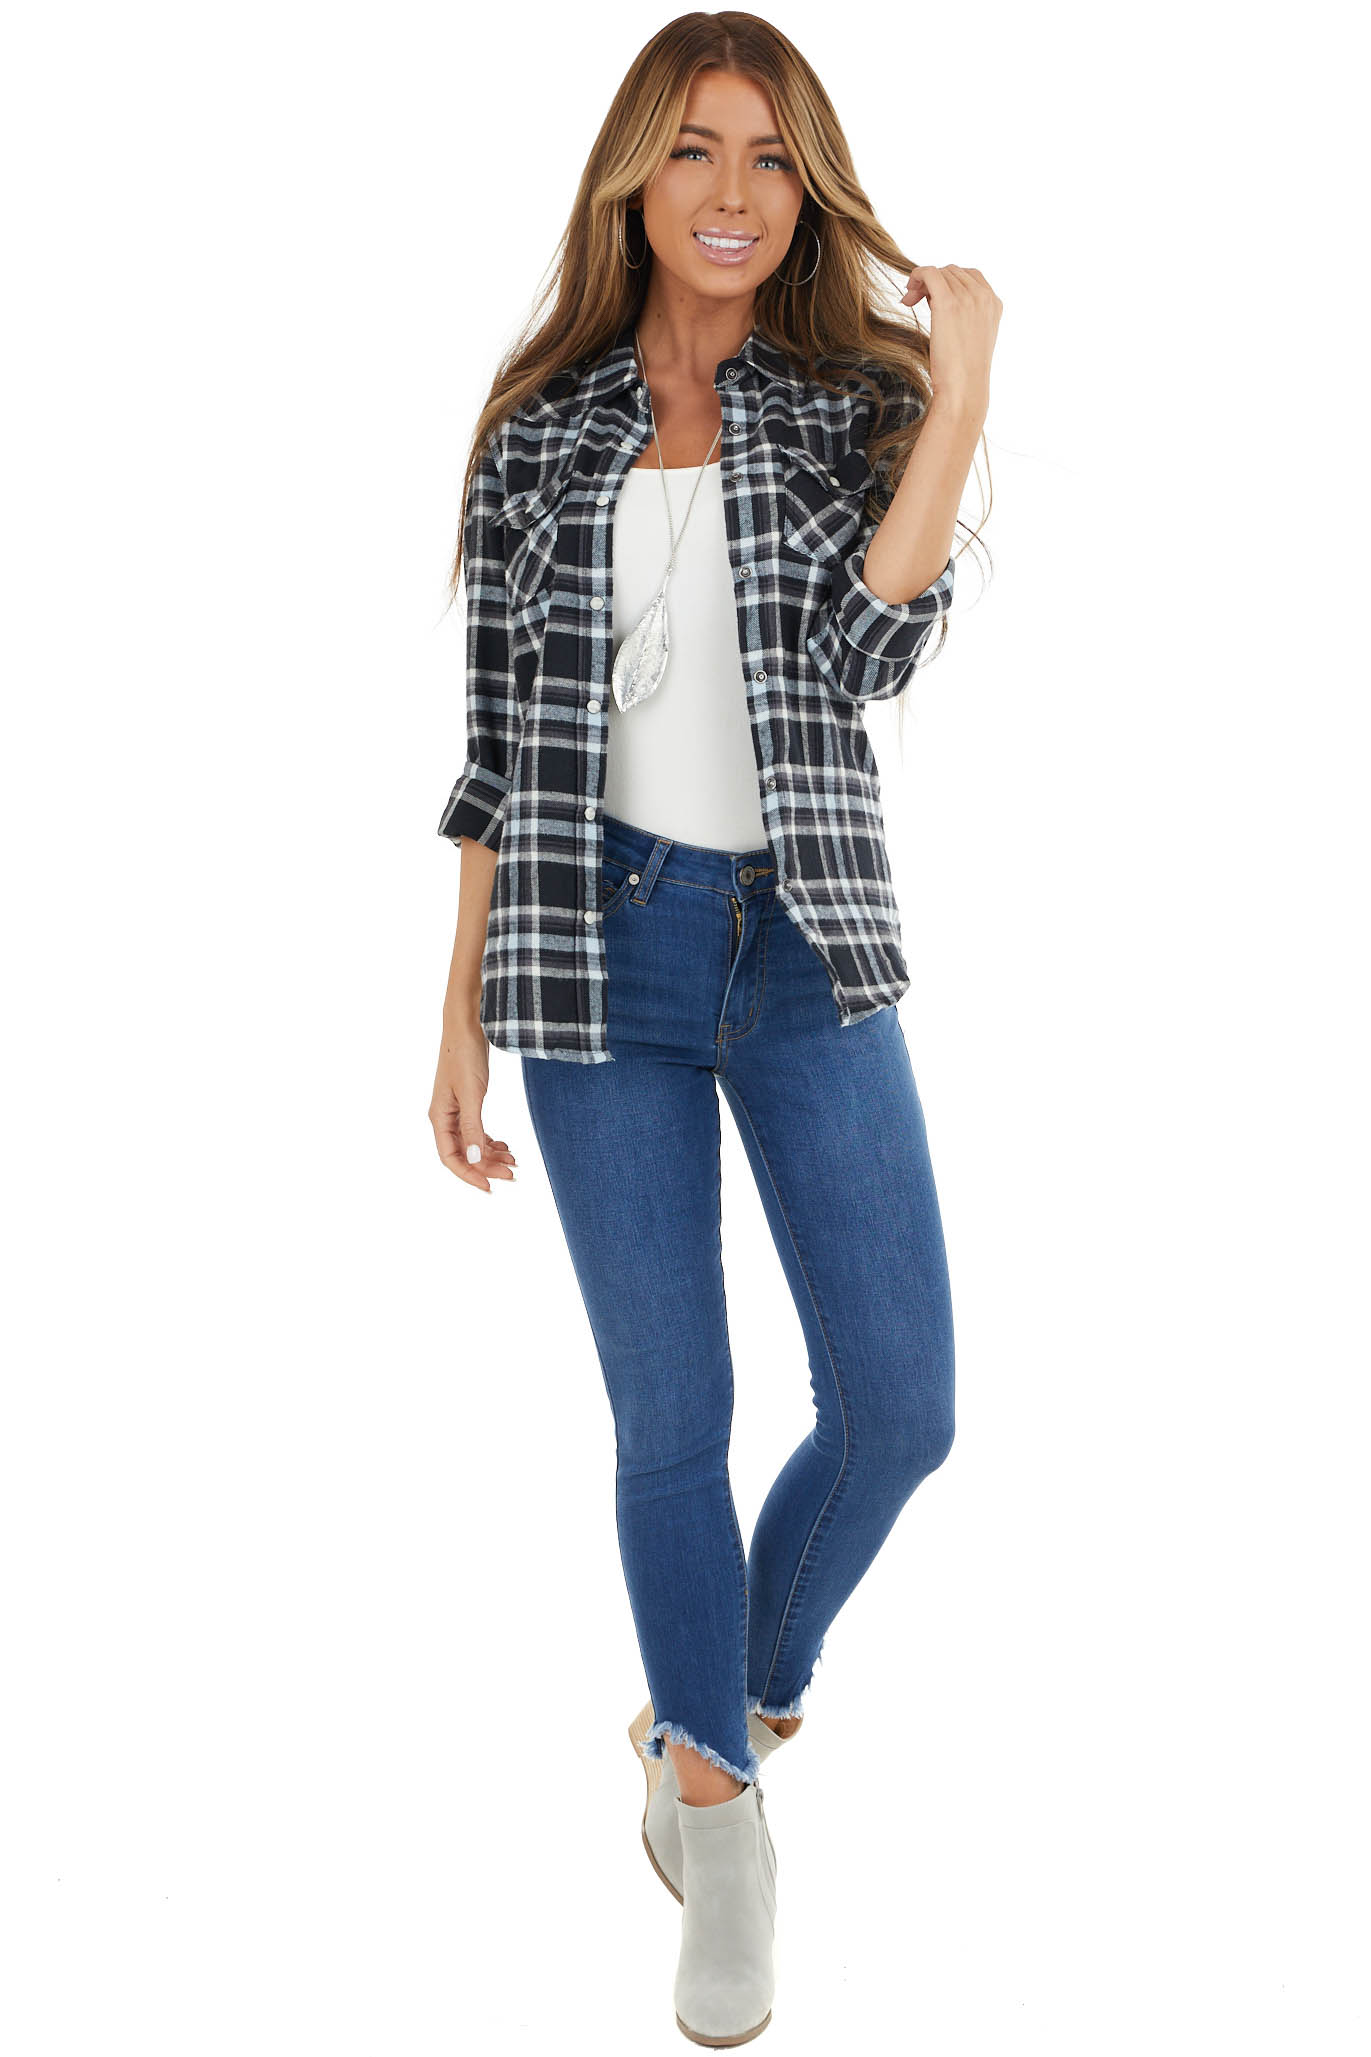 Black and Baby Blue Plaid Woven Top with Snap Button Closure